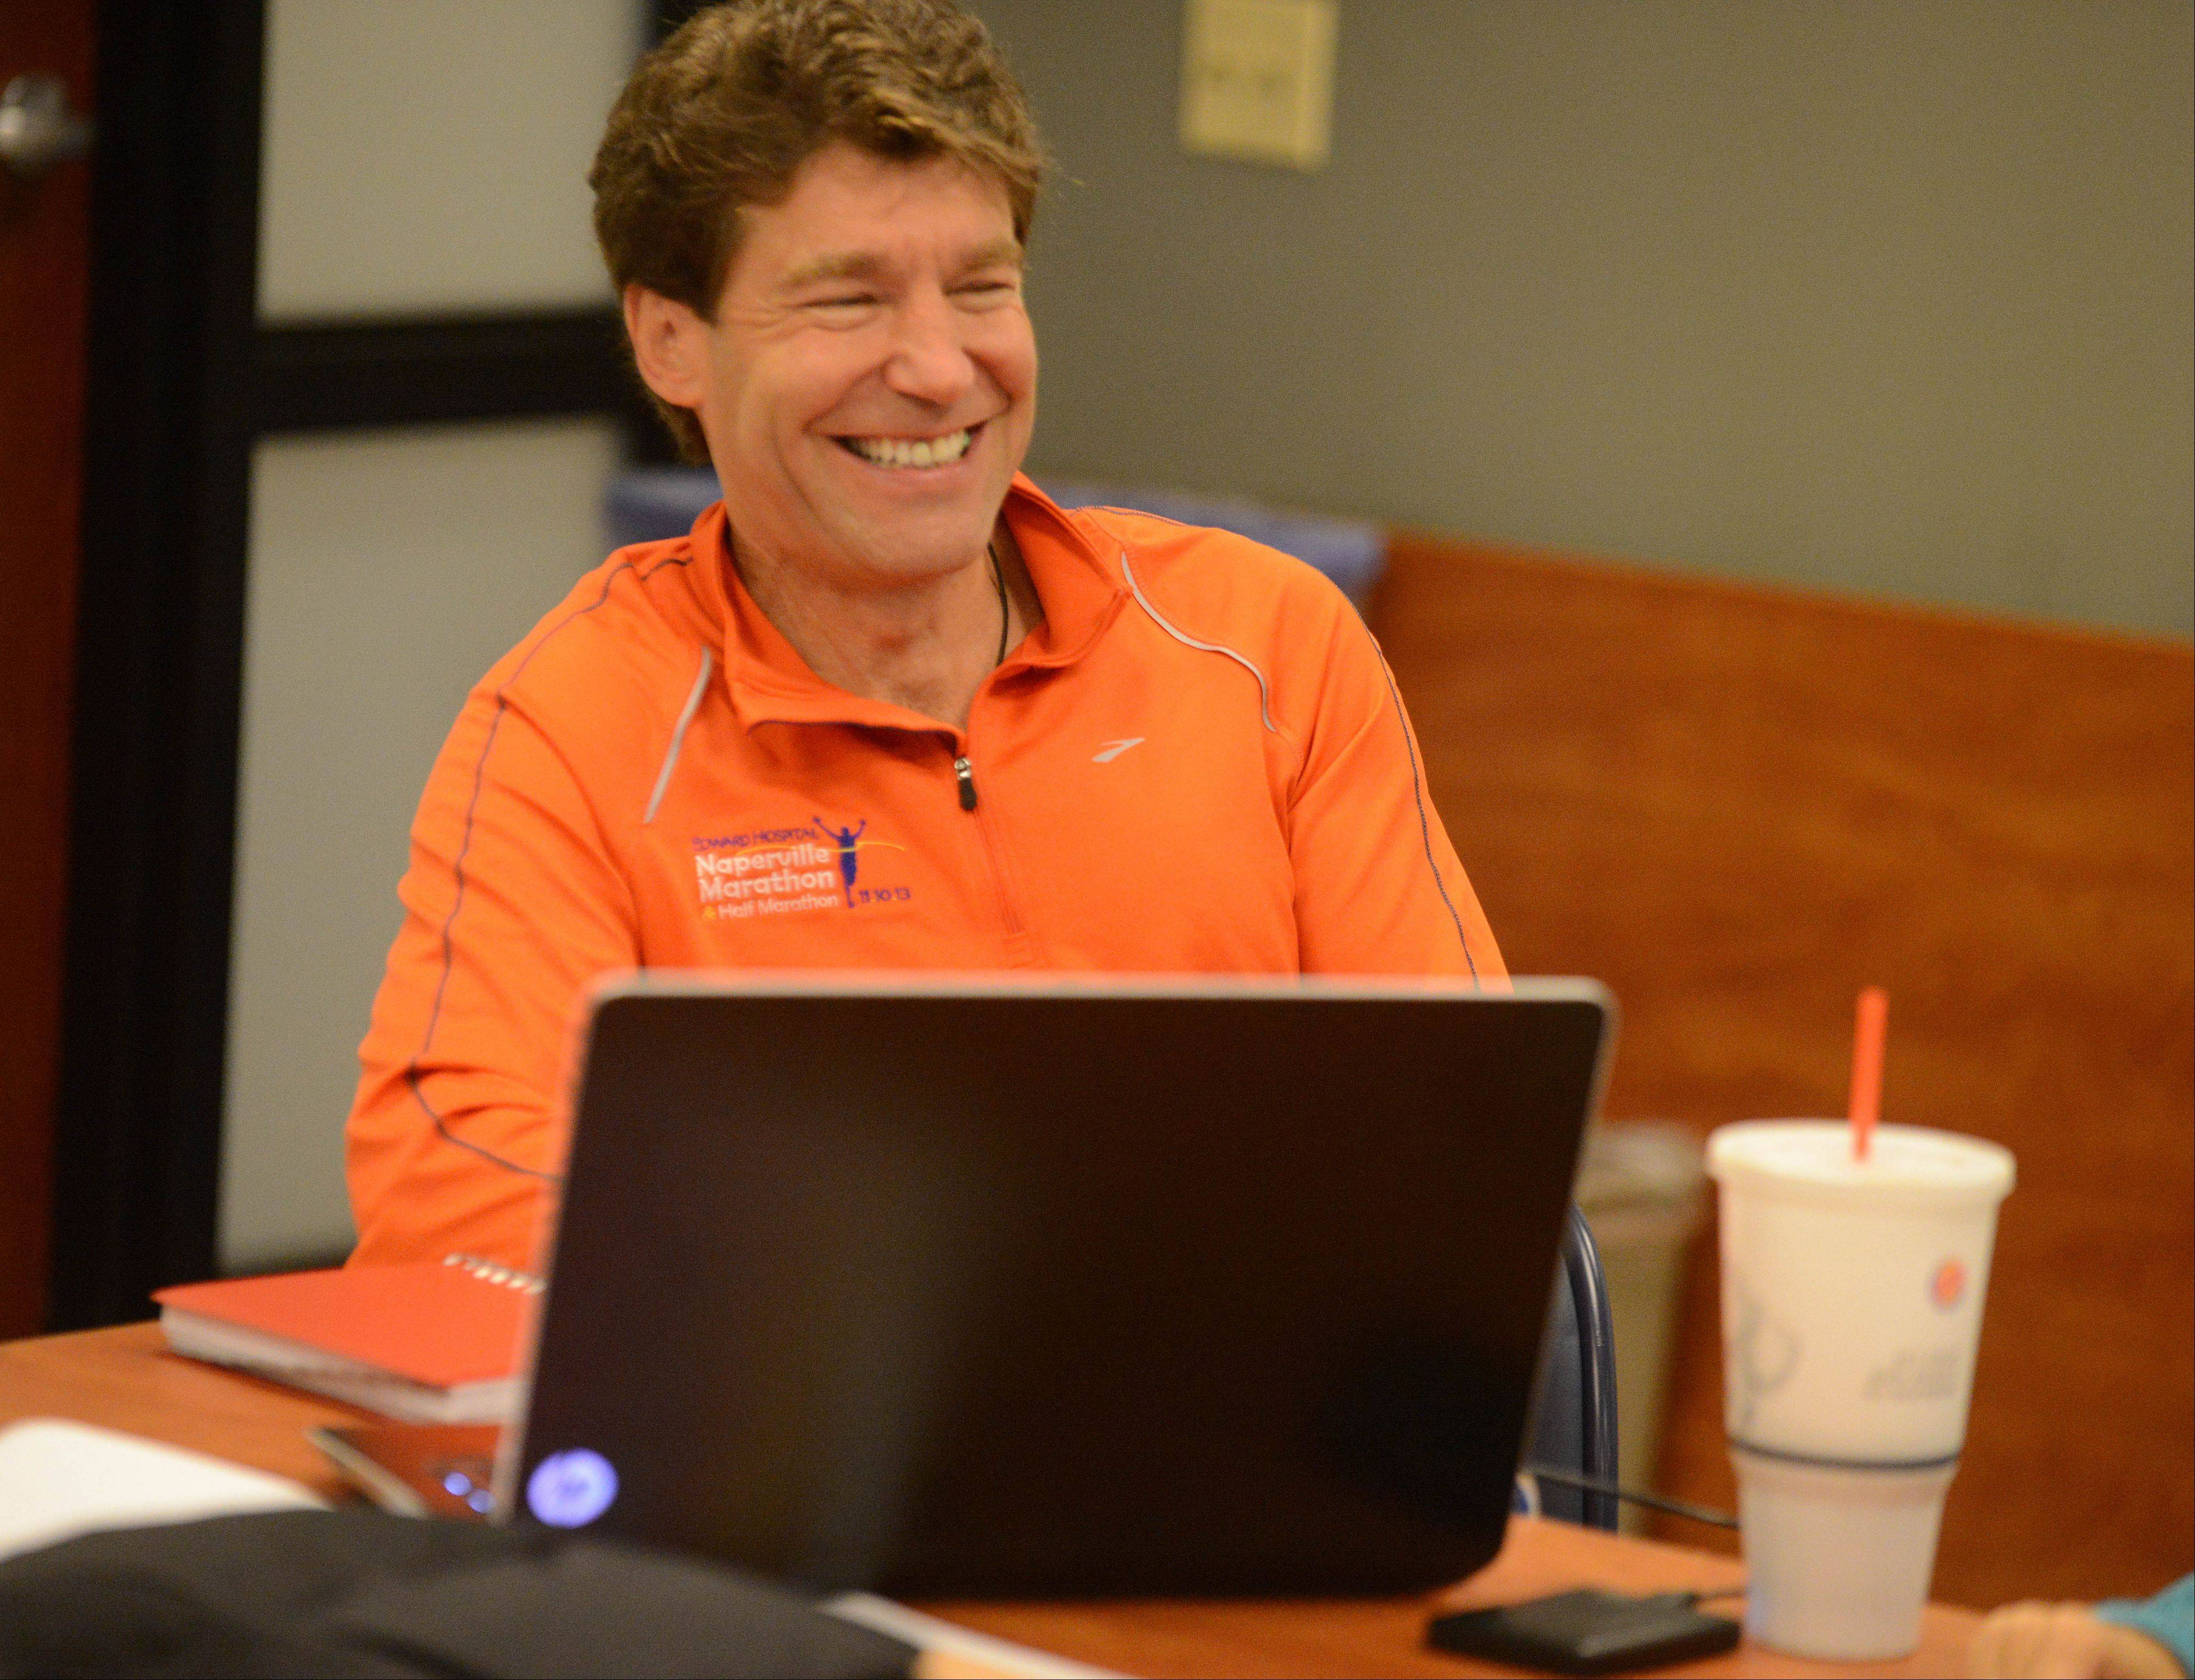 Craig Bixler, one of five directors of the Edward Hospital Naperville Marathon and Half Marathon, laughs along with volunteers who will help make the race possible during a planning meeting in October.